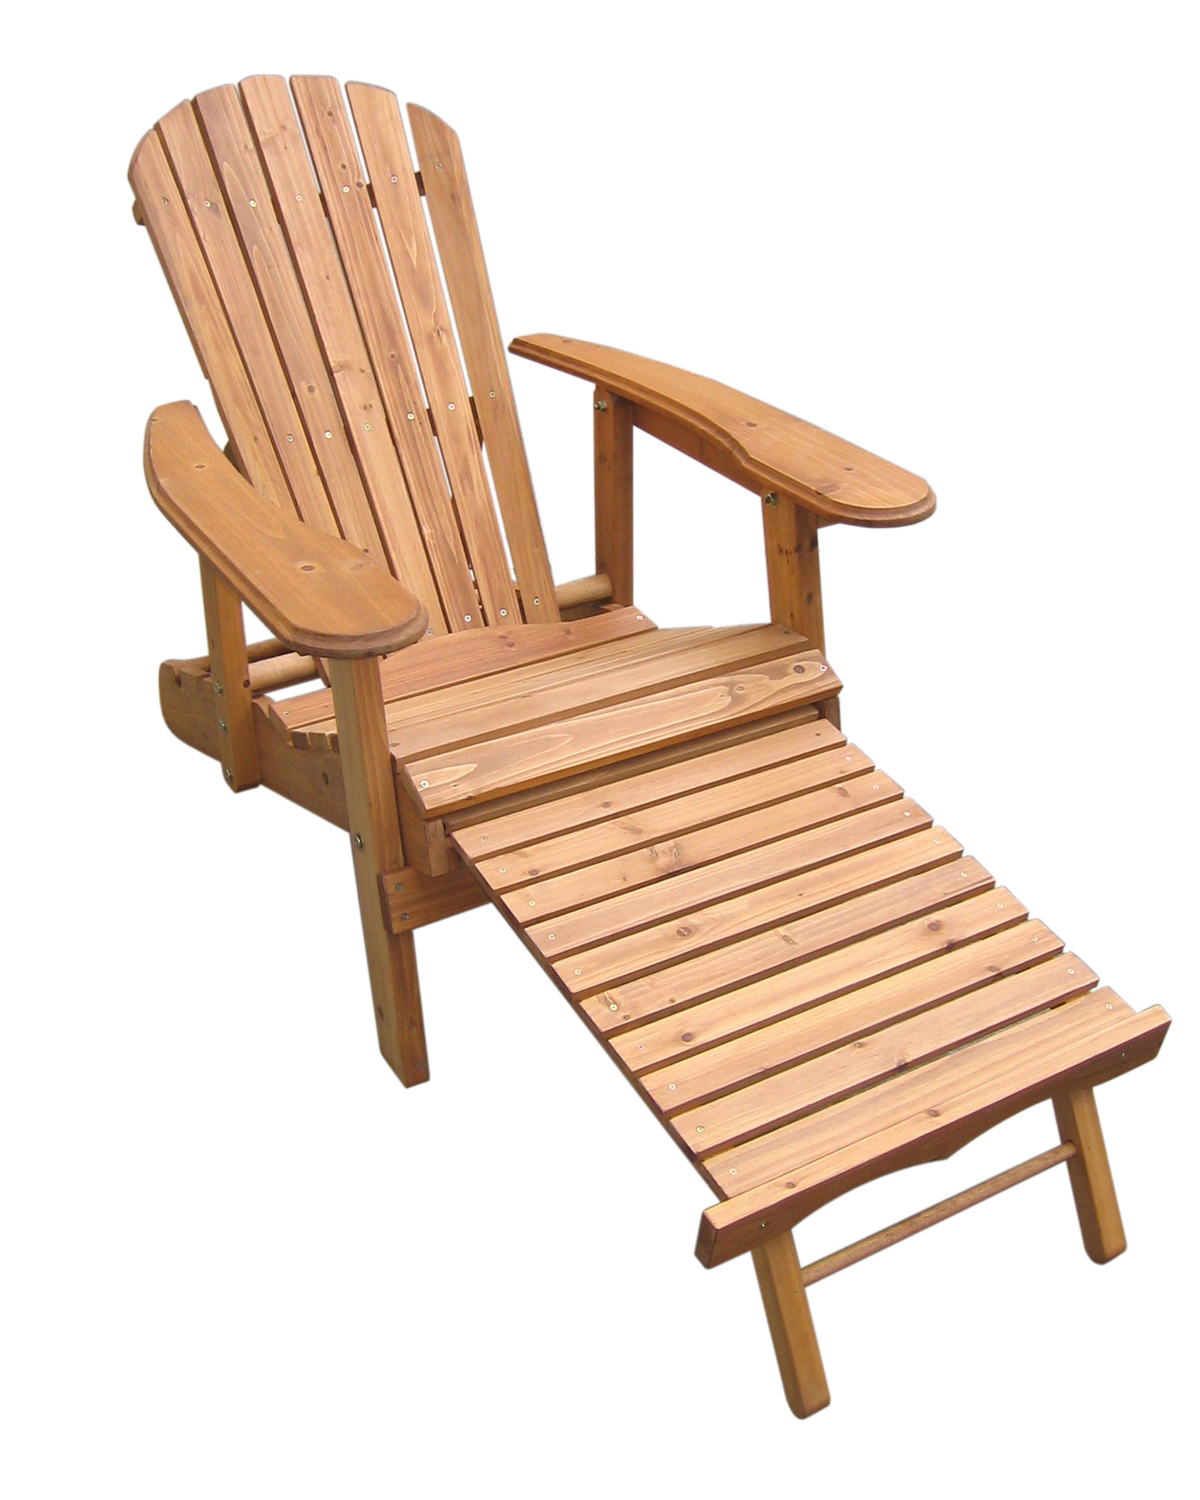 Very Impressive portraiture of  and Reclining Fir Wood Adirondack Chair With Pull Out Ottoman eBay with #AF5D1C color and 1200x1500 pixels